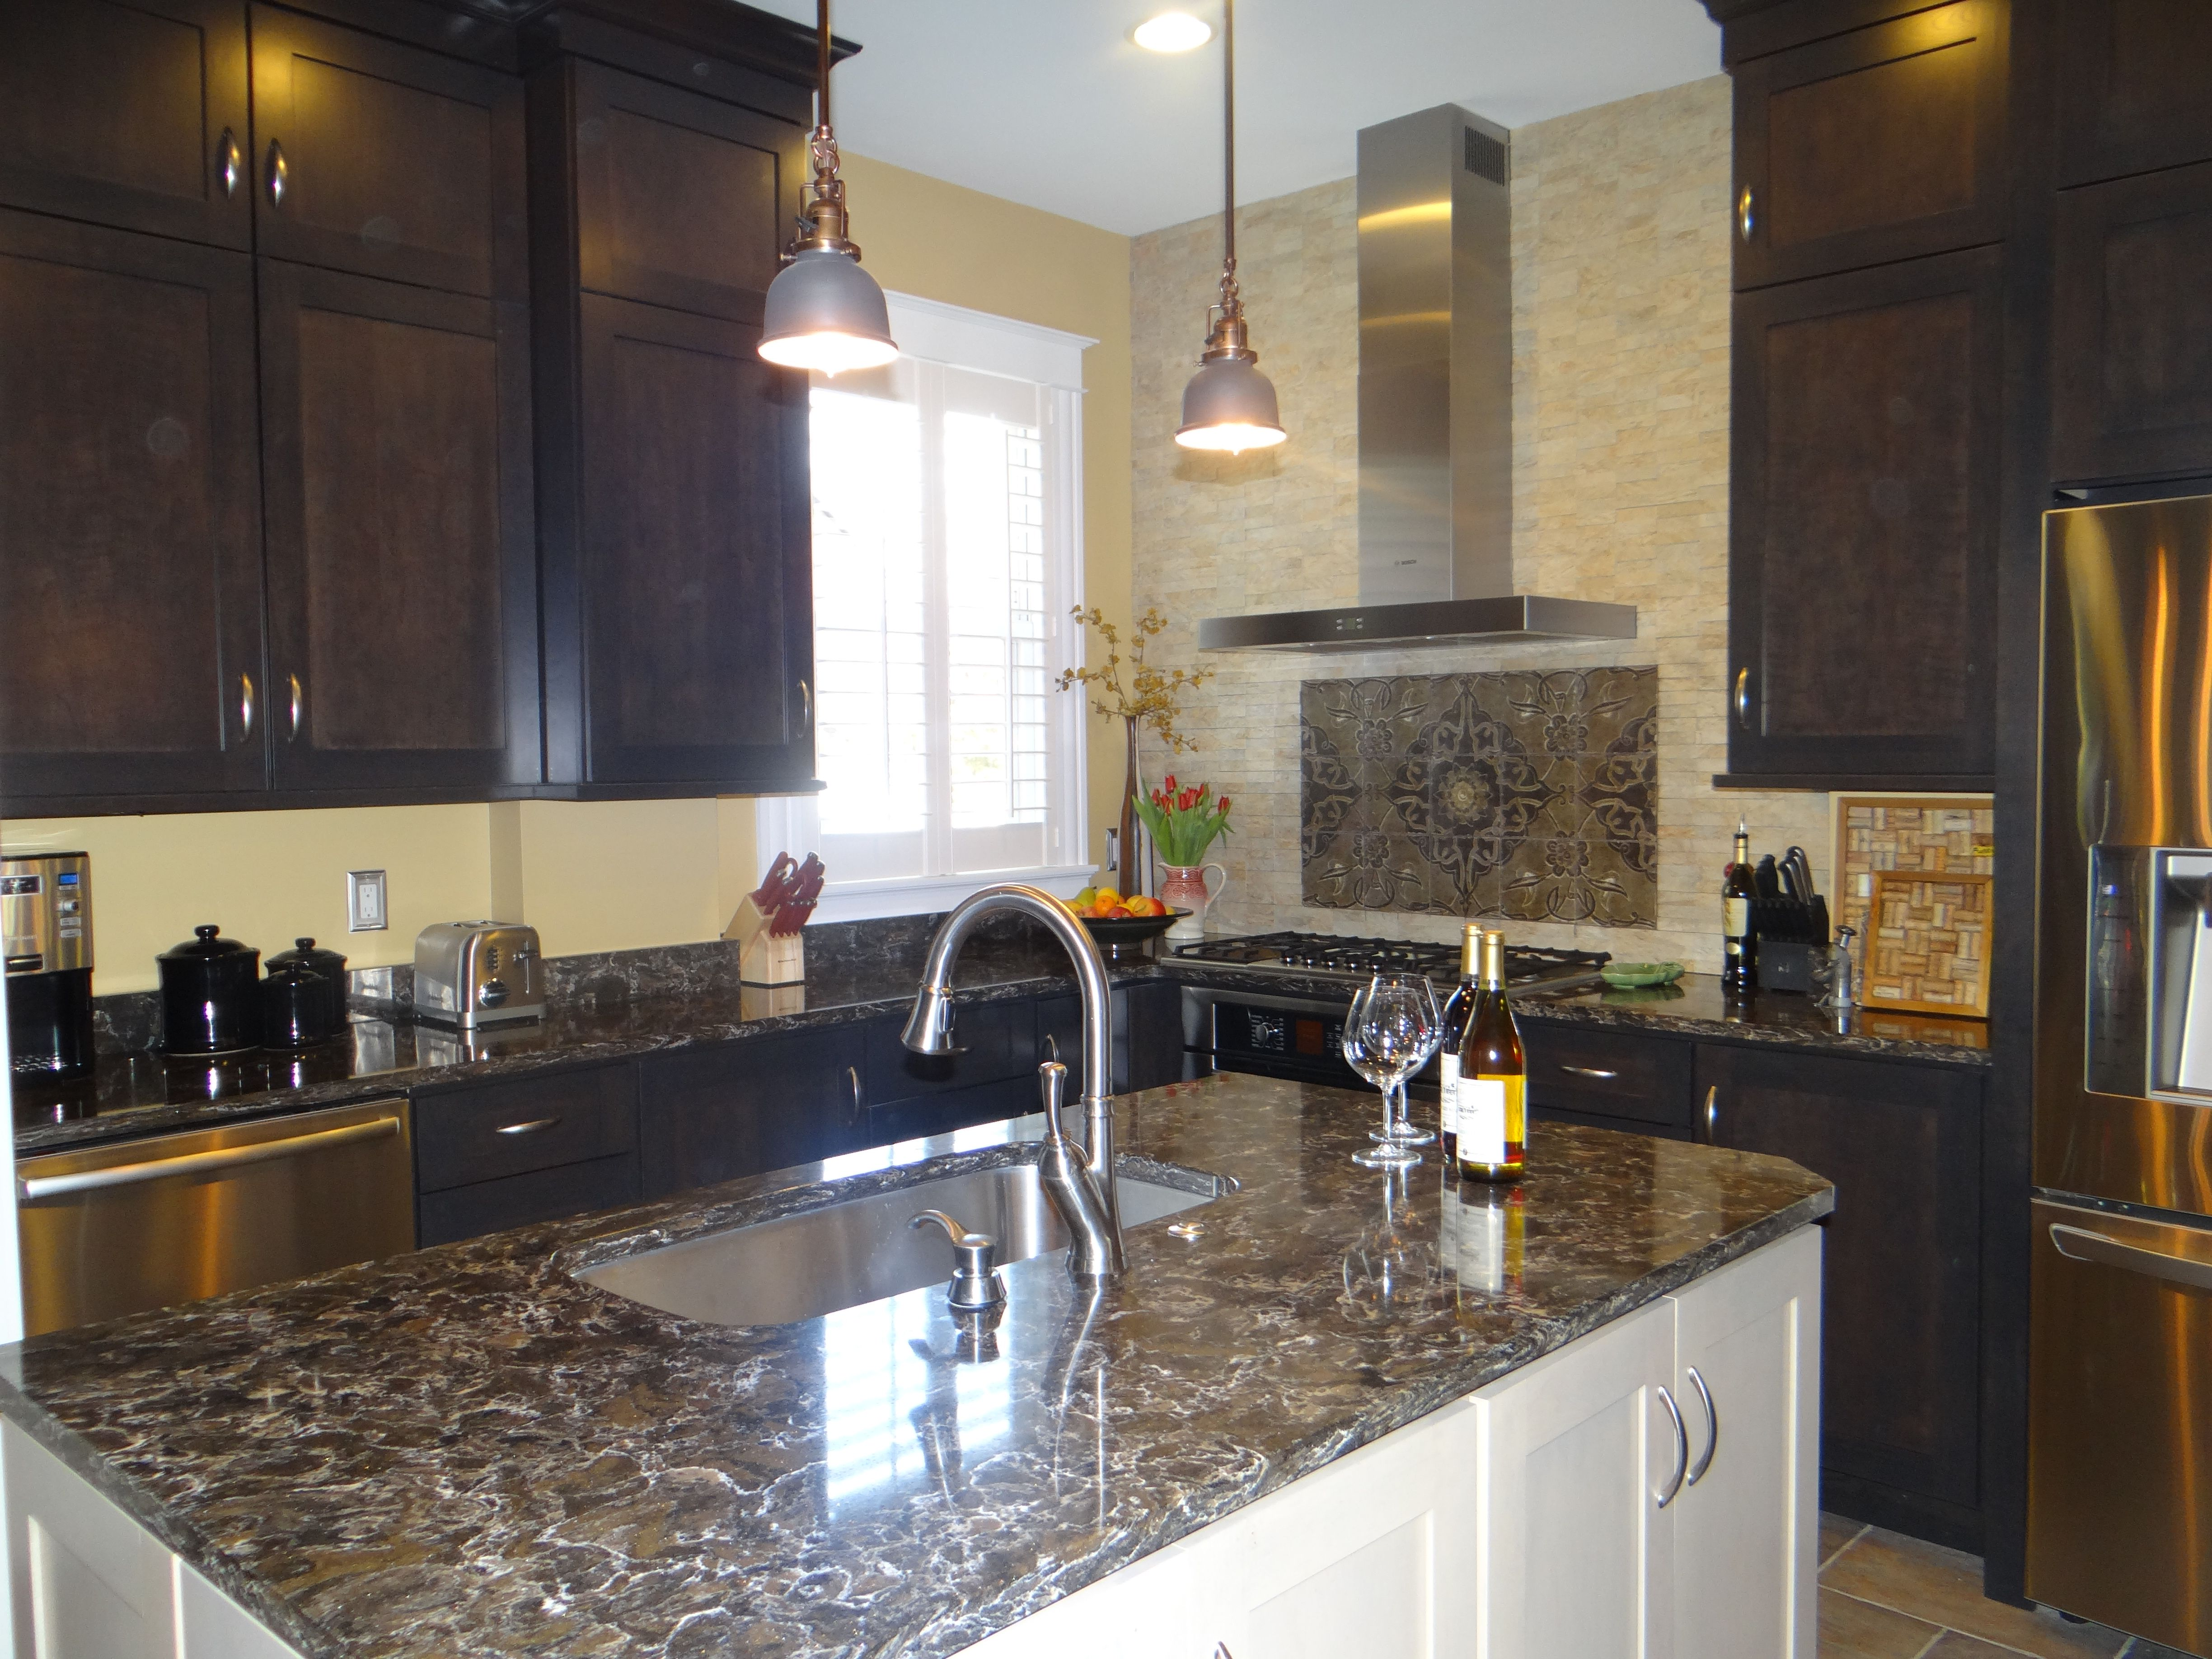 Medium Of Center Island Countertops